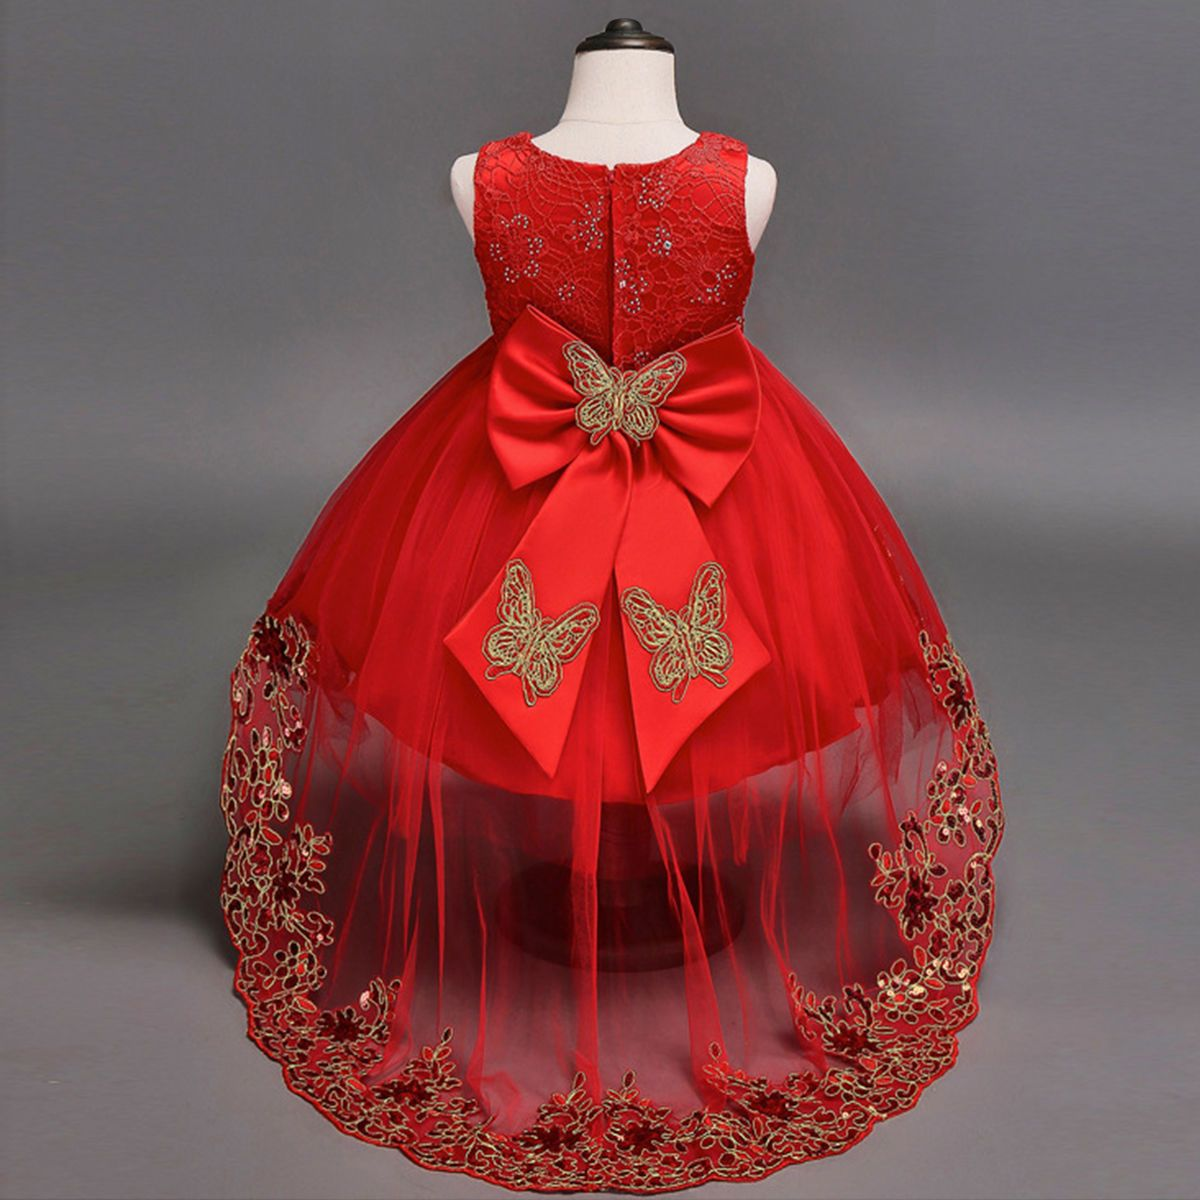 Pin by anuja shah on marvi pinterest girls dresses girl outfits